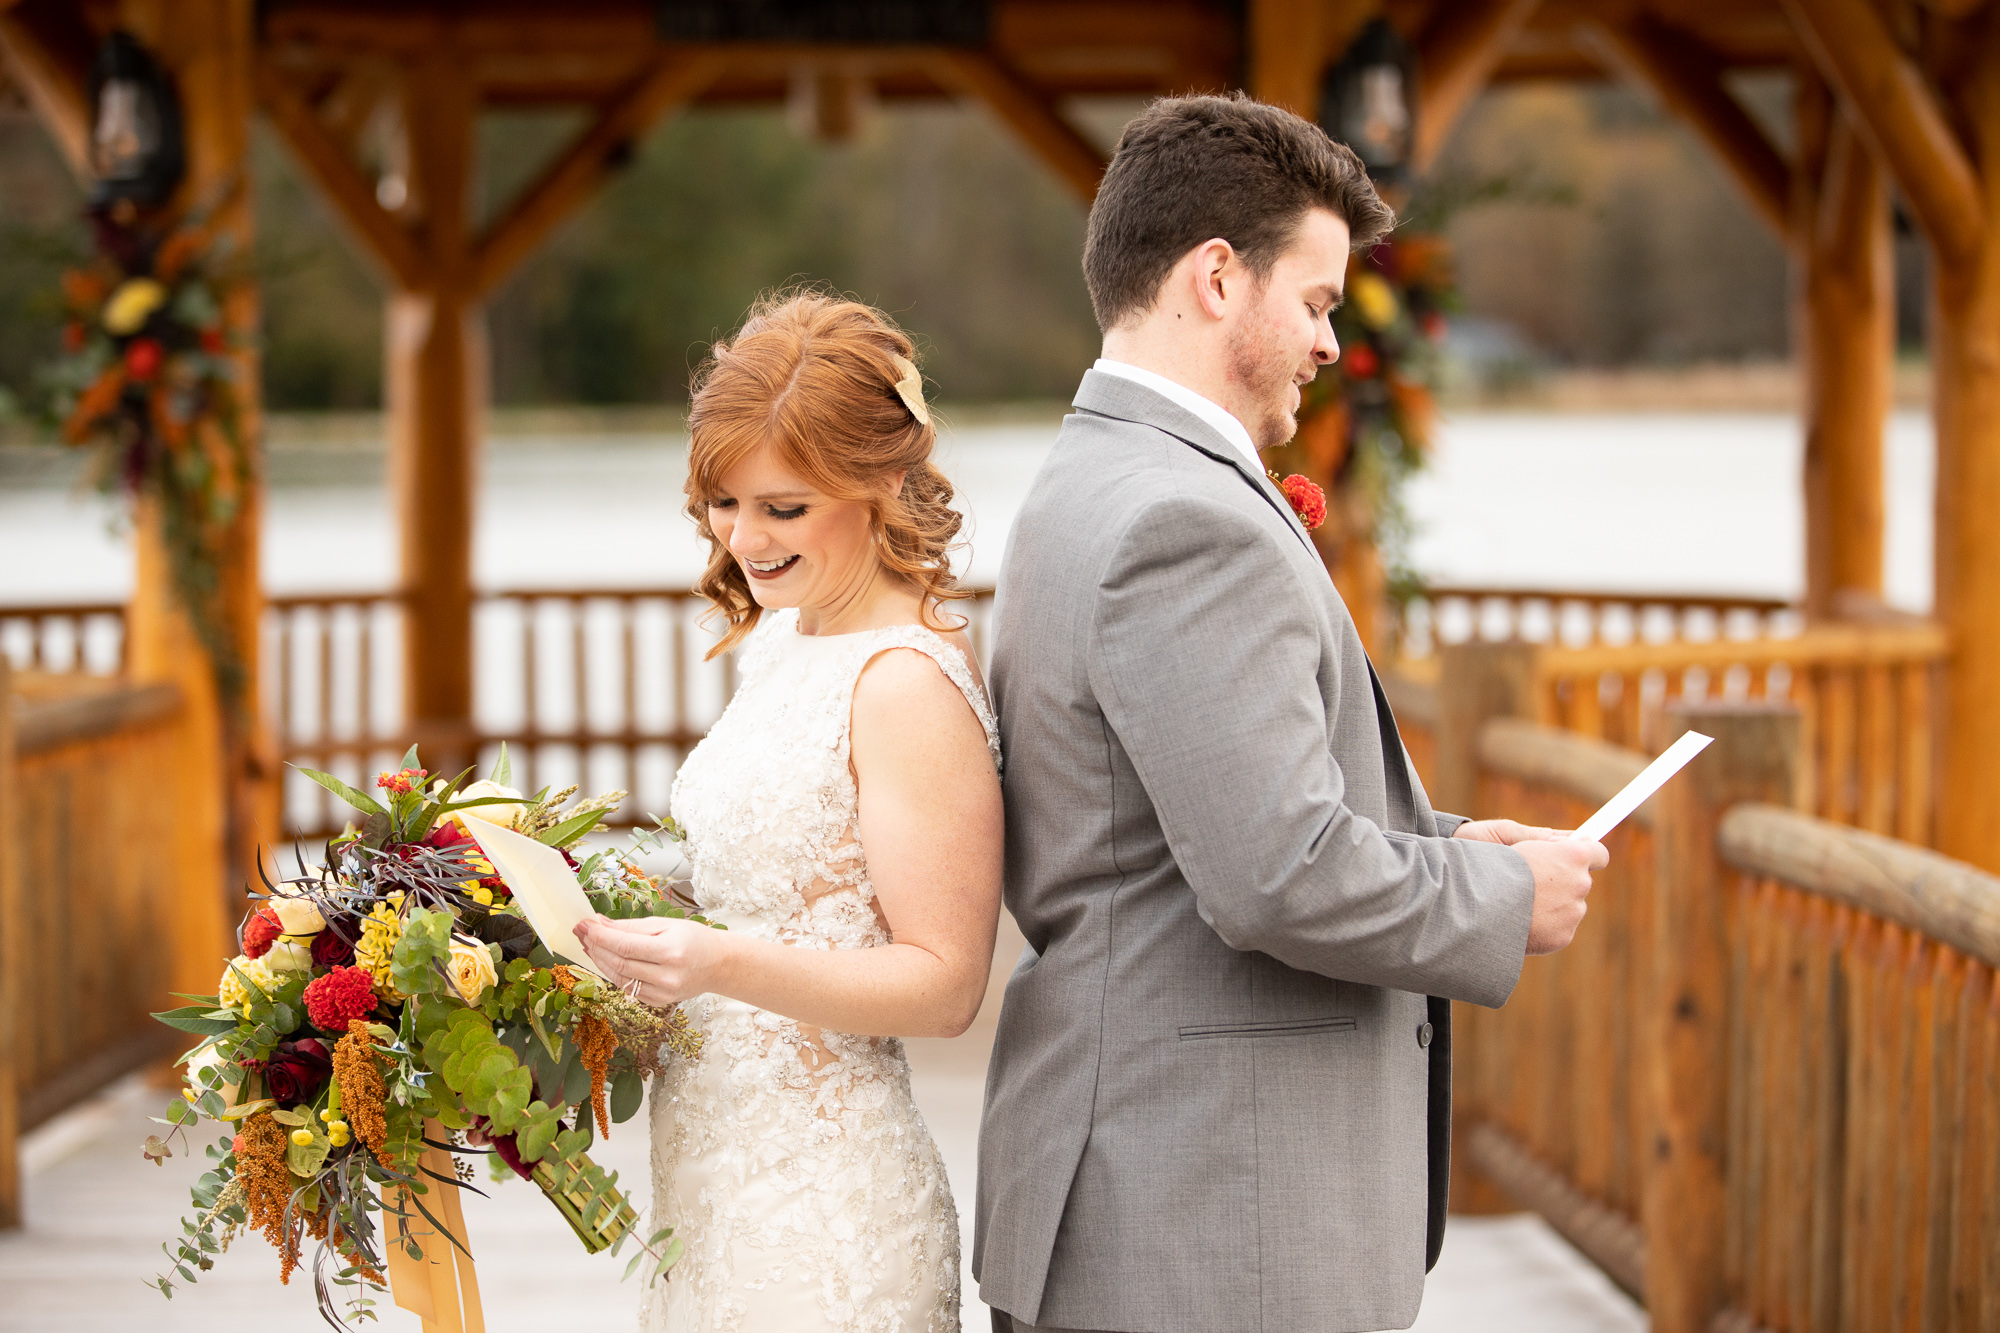 Bride and groom exchanging Wood & Grace love letters at autumn wedding styled shoot.